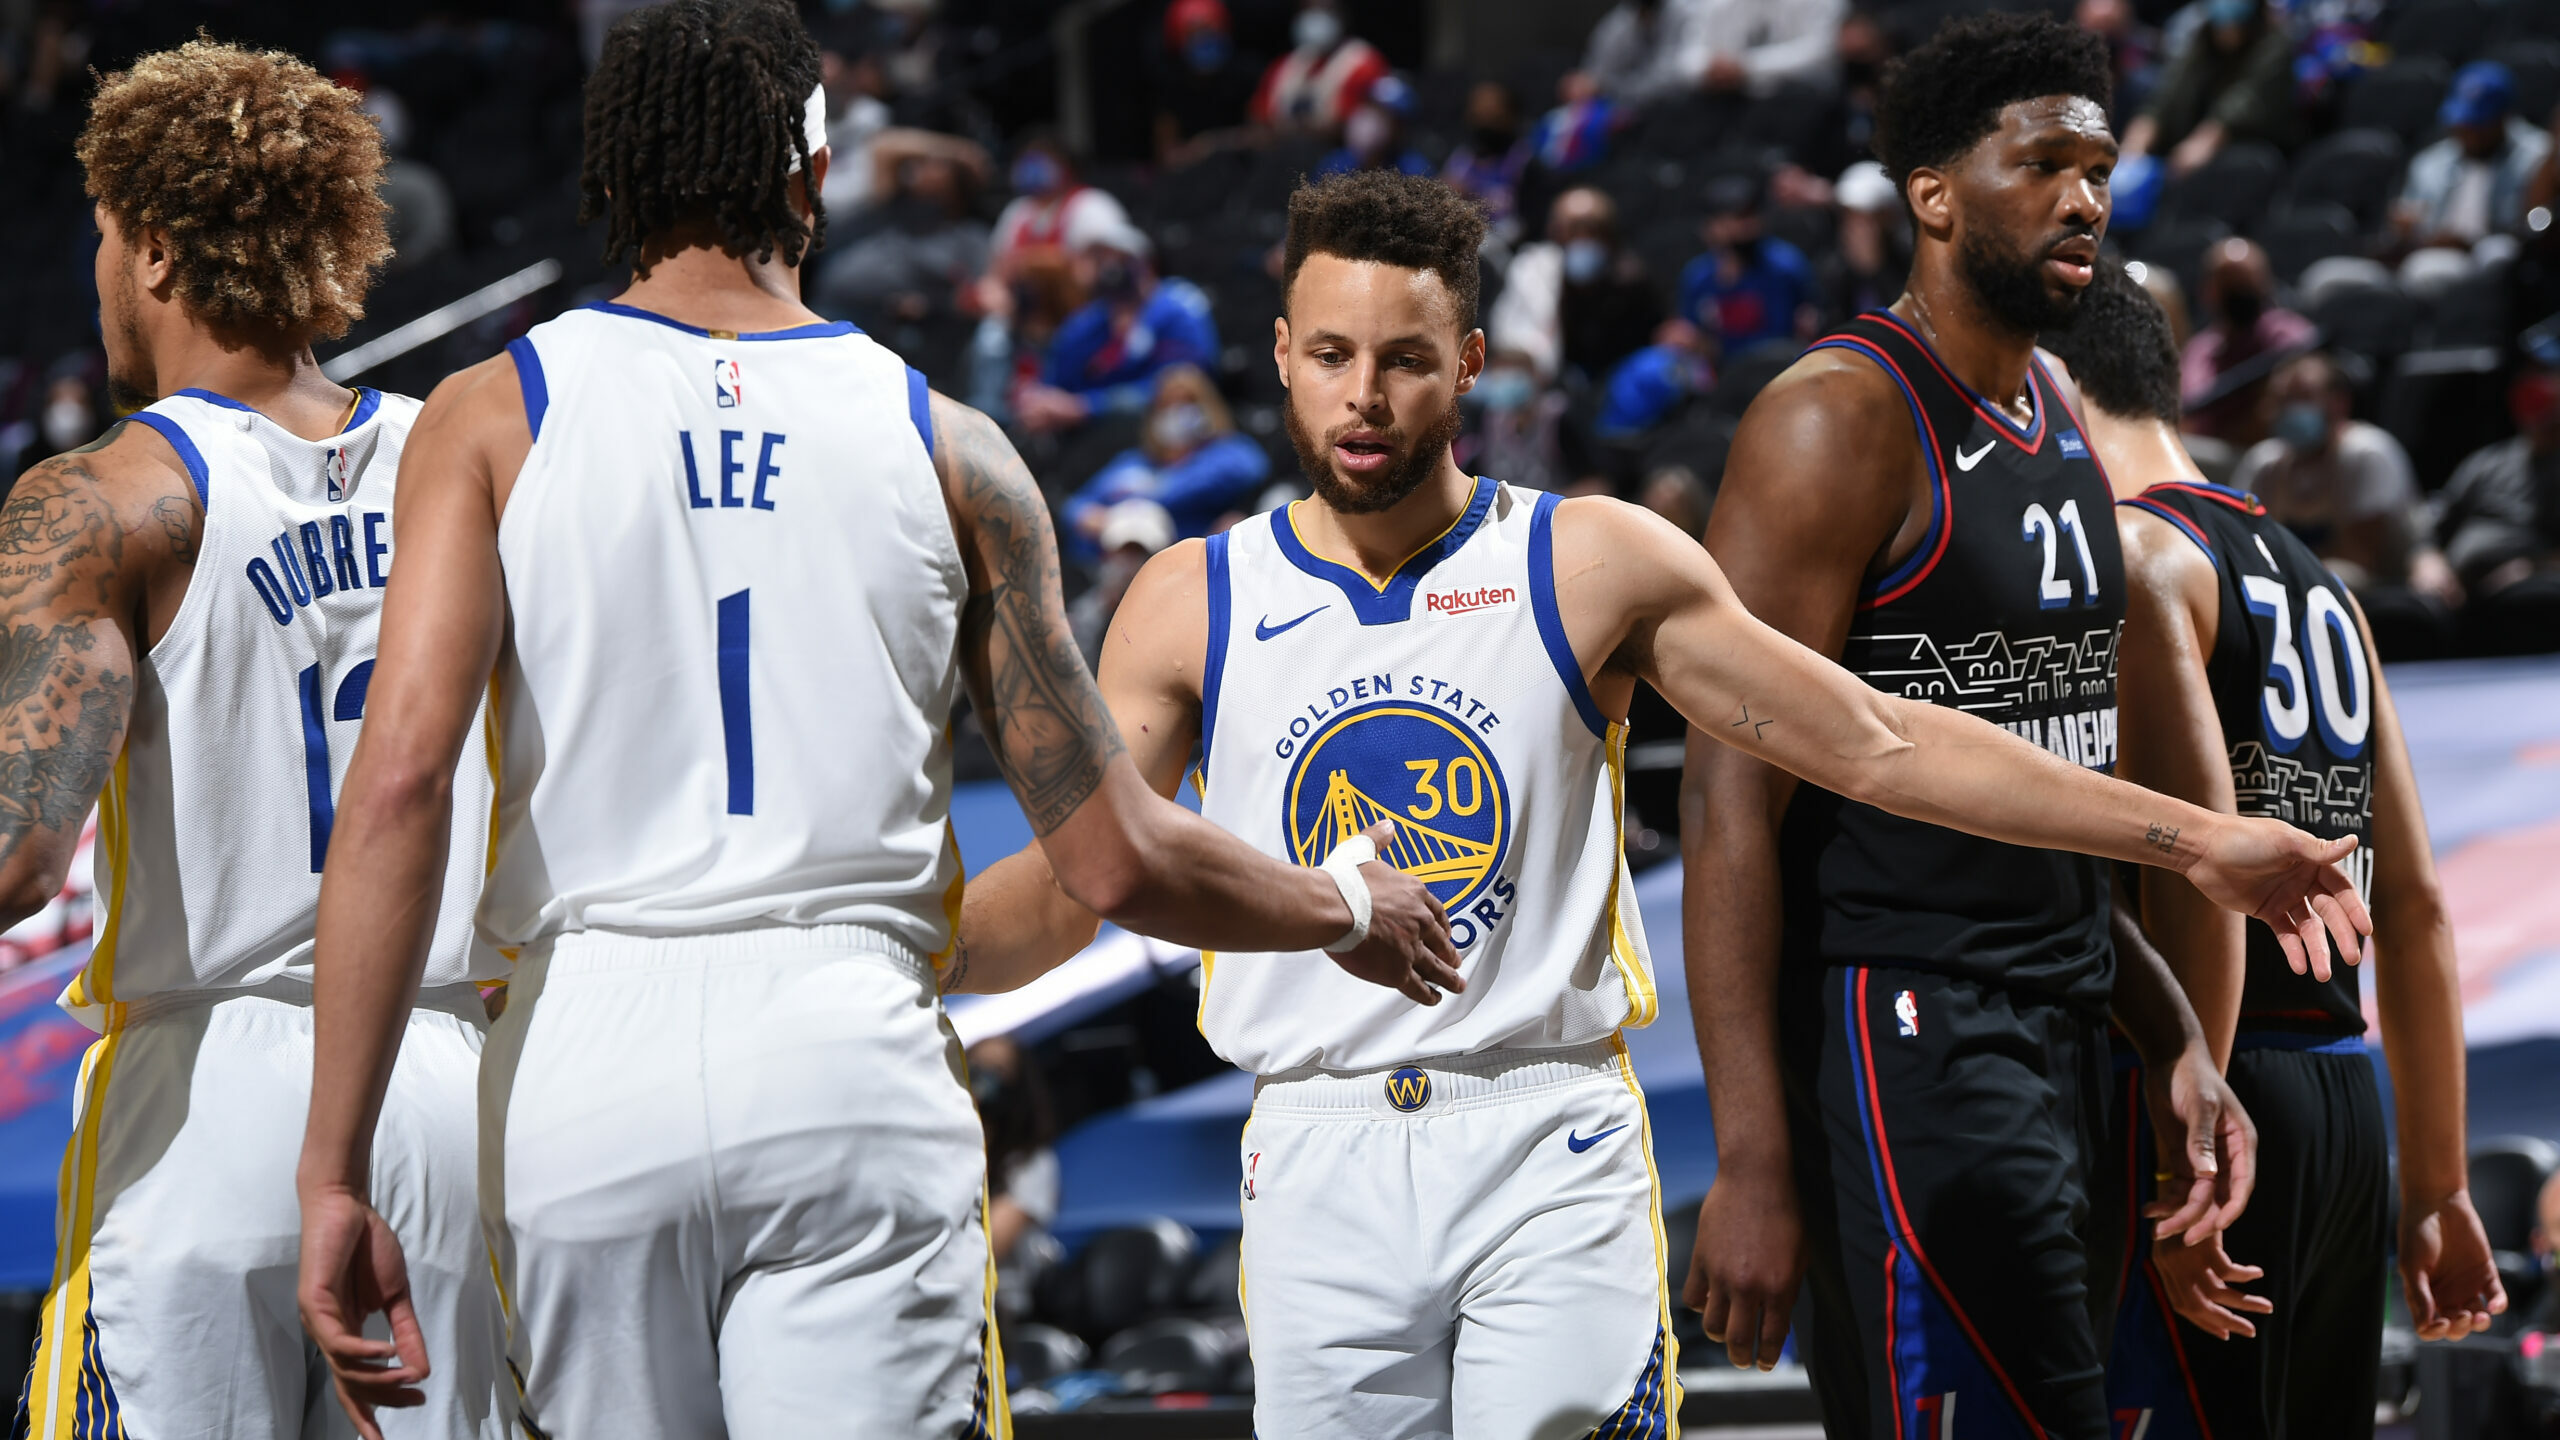 Curry stays hot, drops 49 in win over Sixers